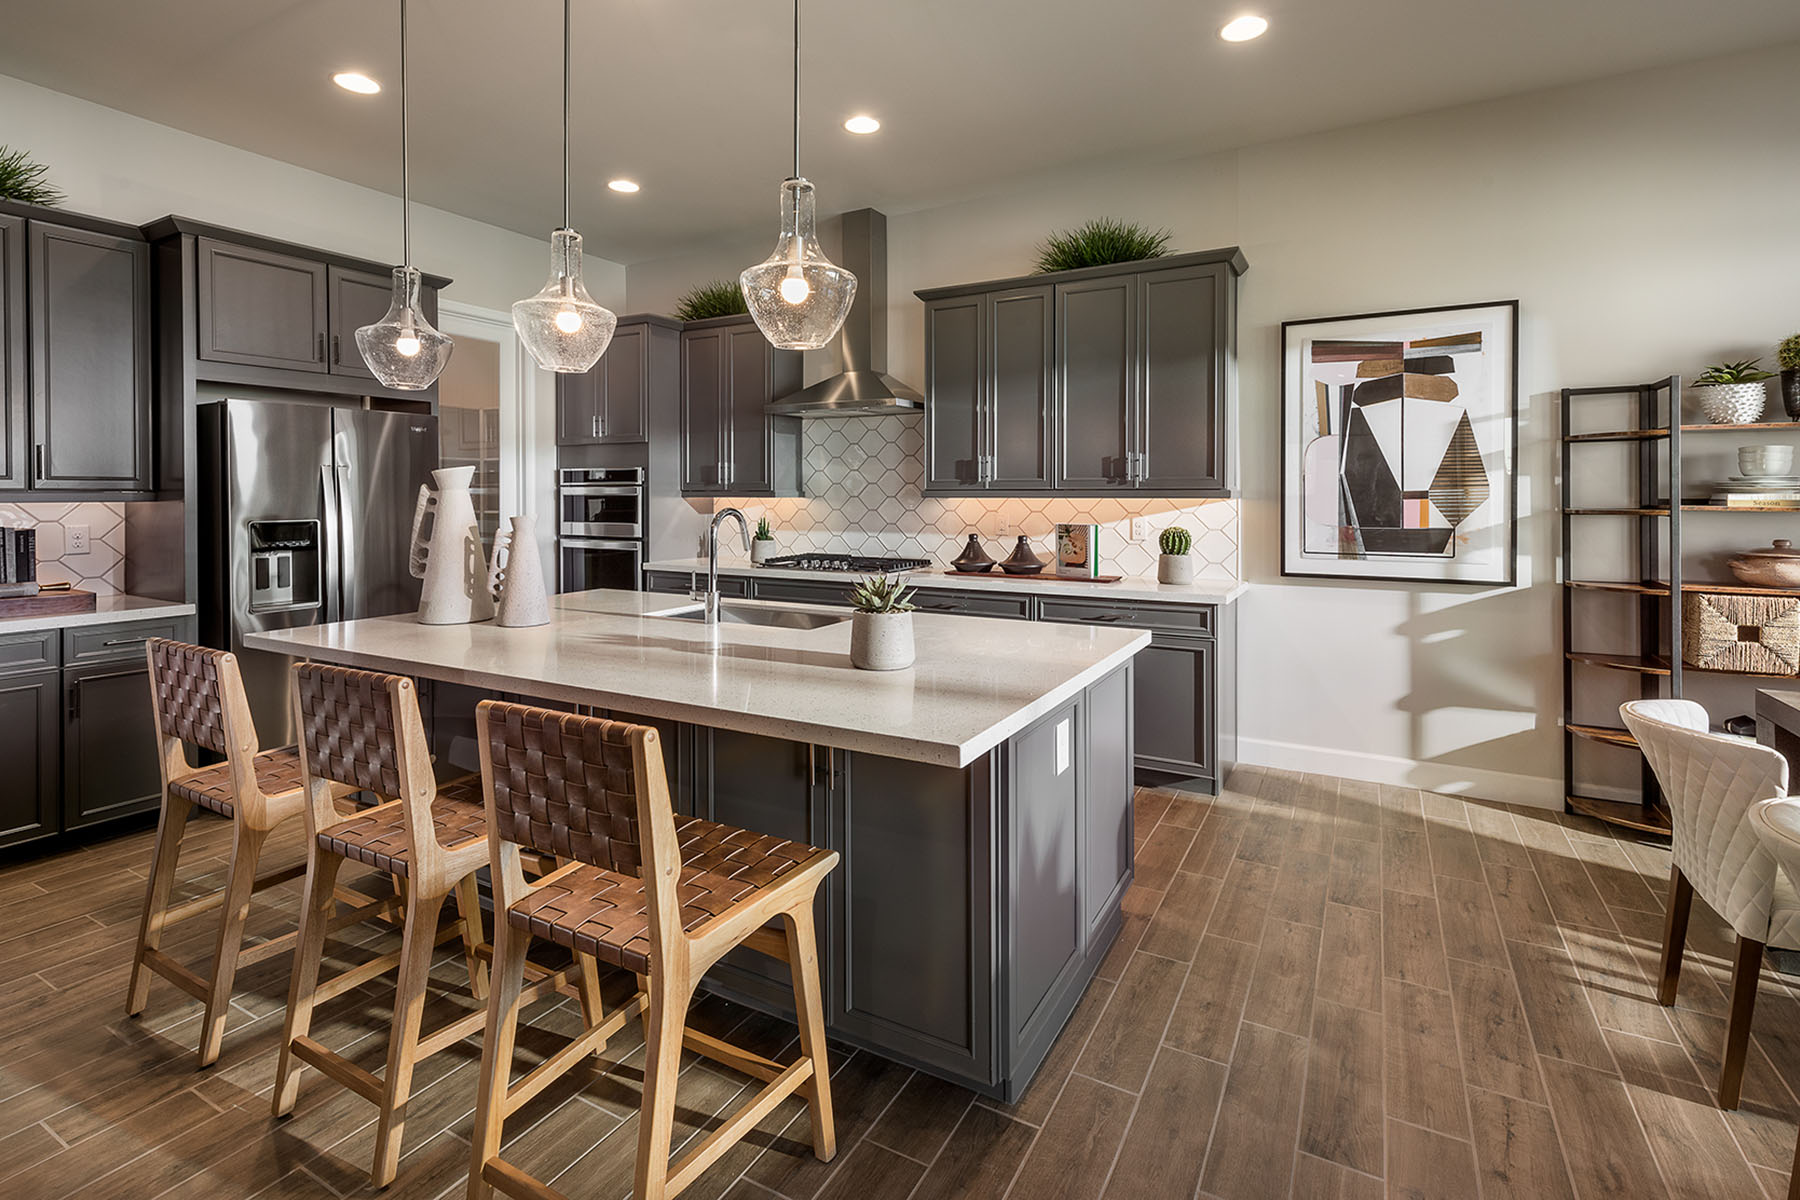 Caden Plan Kitchen at Azure Canyon in Litchfield Park Arizona by Mattamy Homes